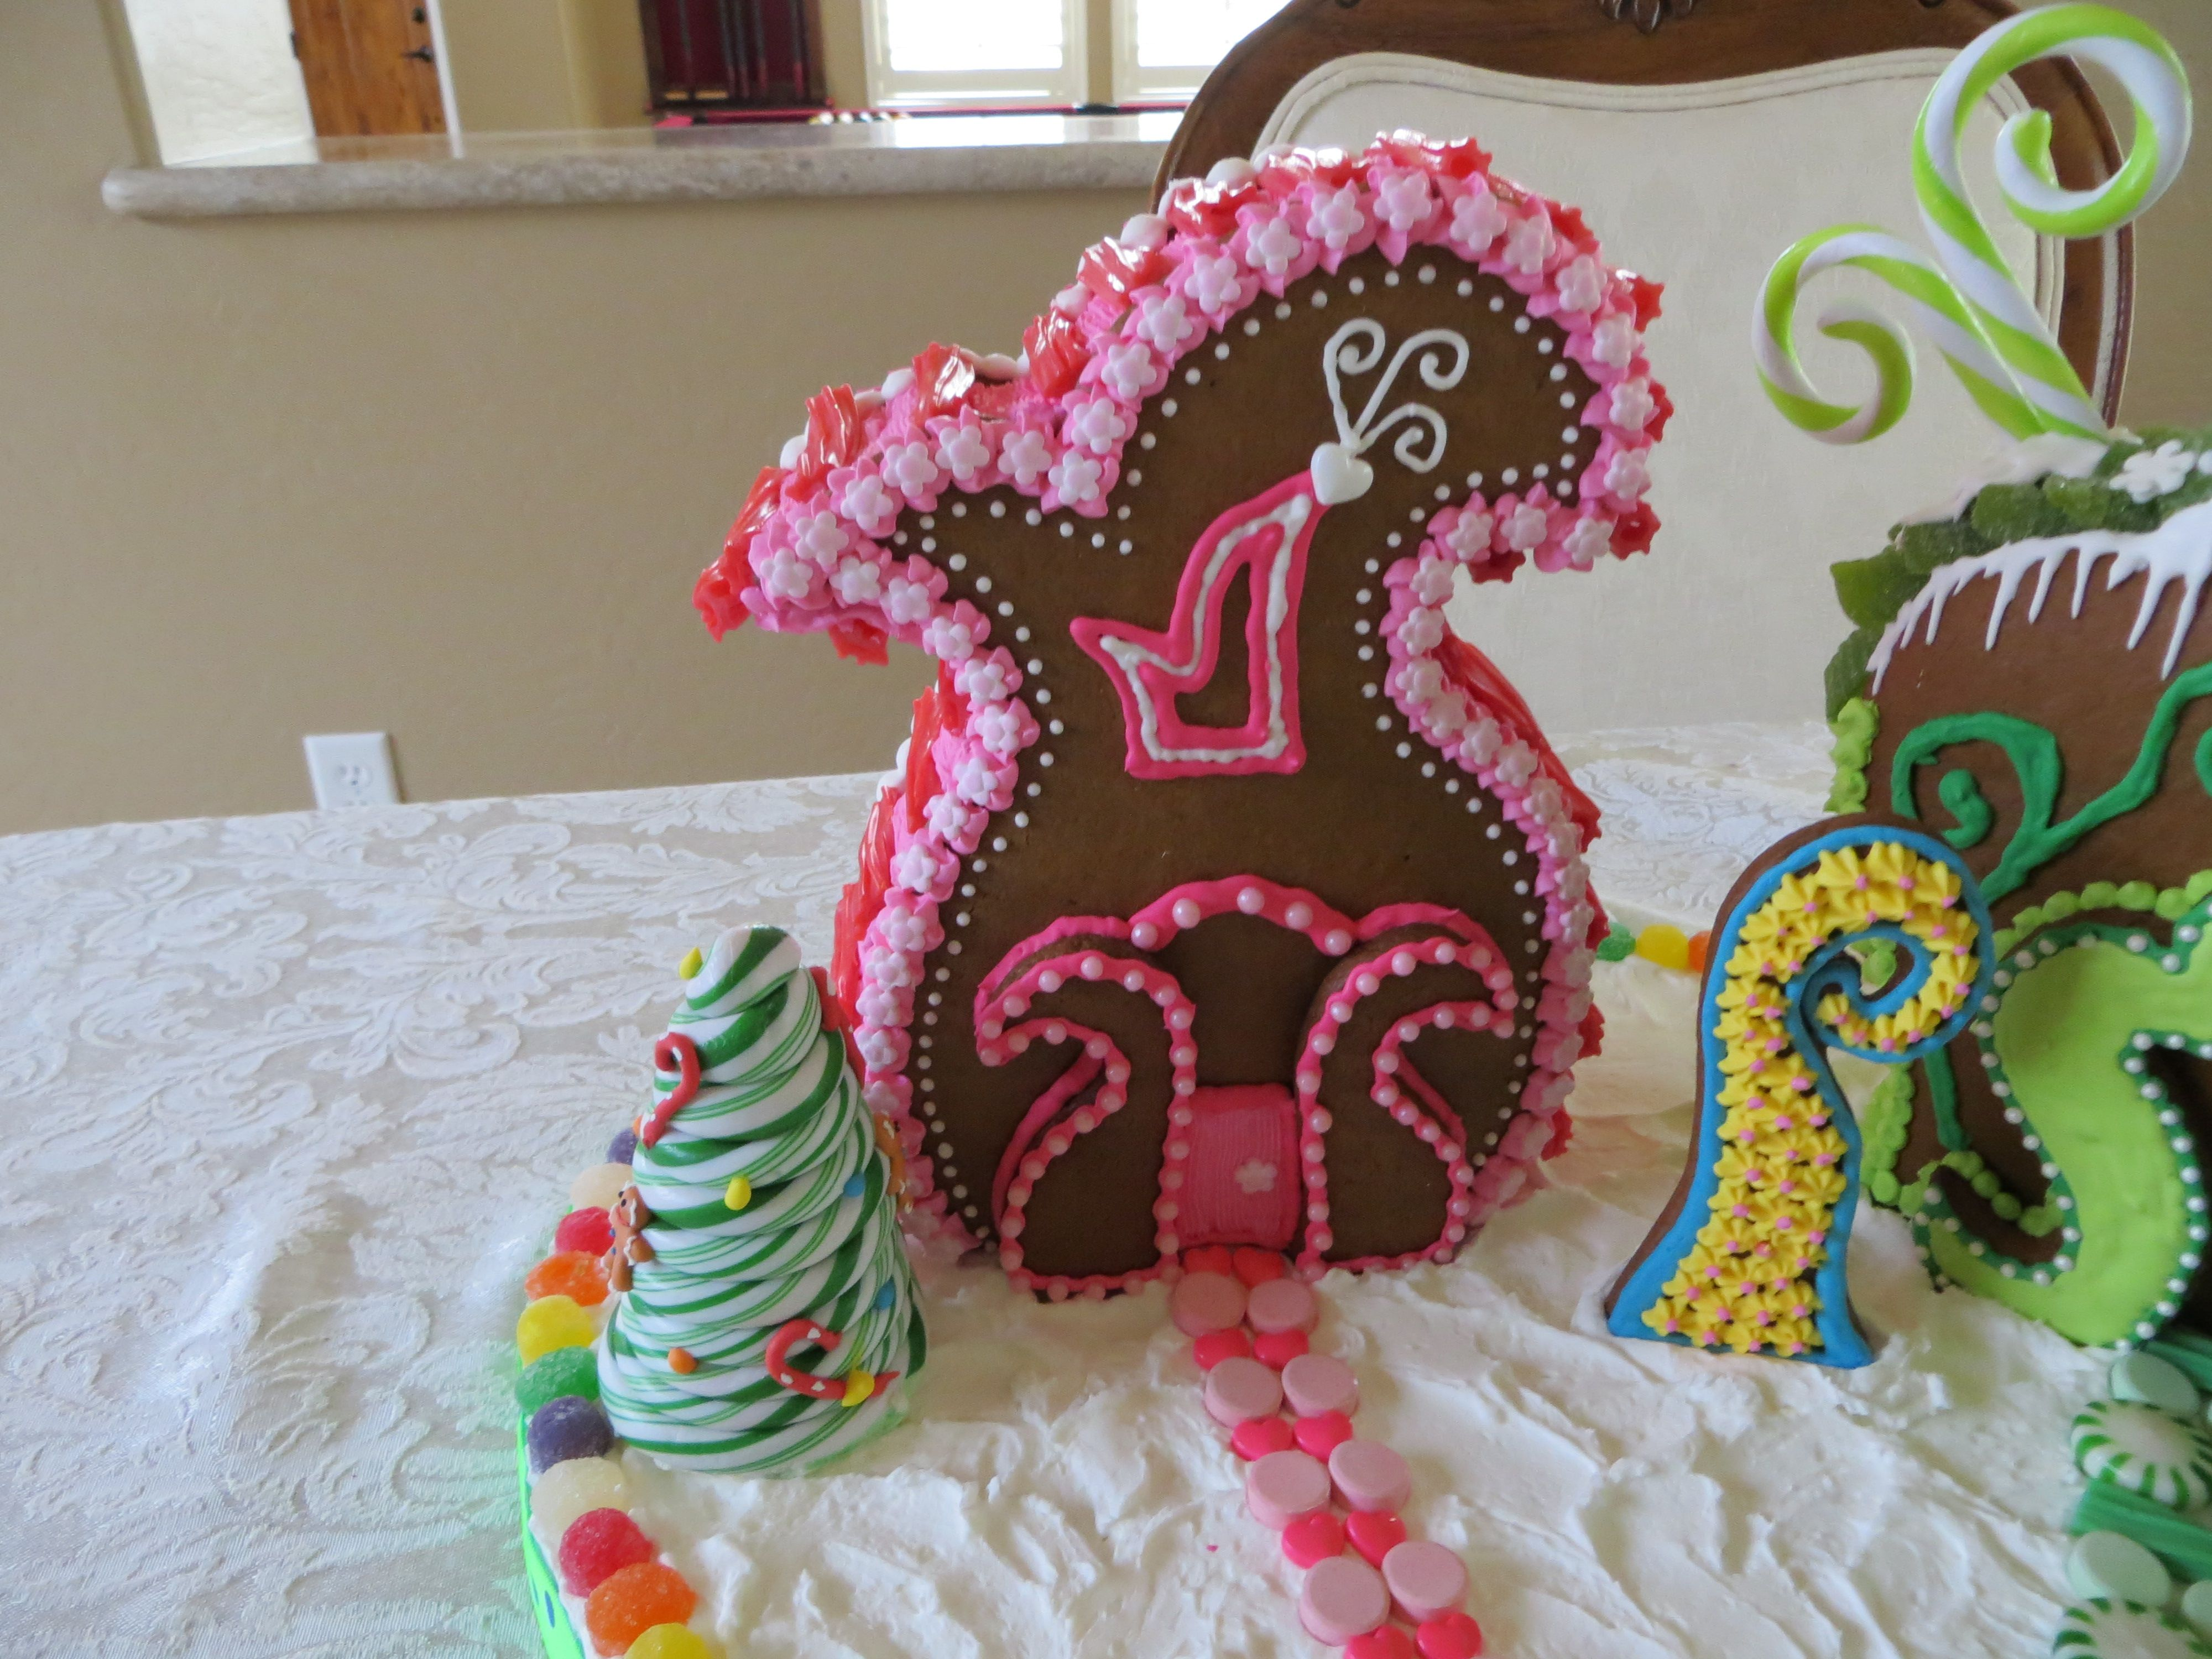 gingerbread house whoville house template  Whoville Gingerbread House Village in 5 | Gingerbread ...